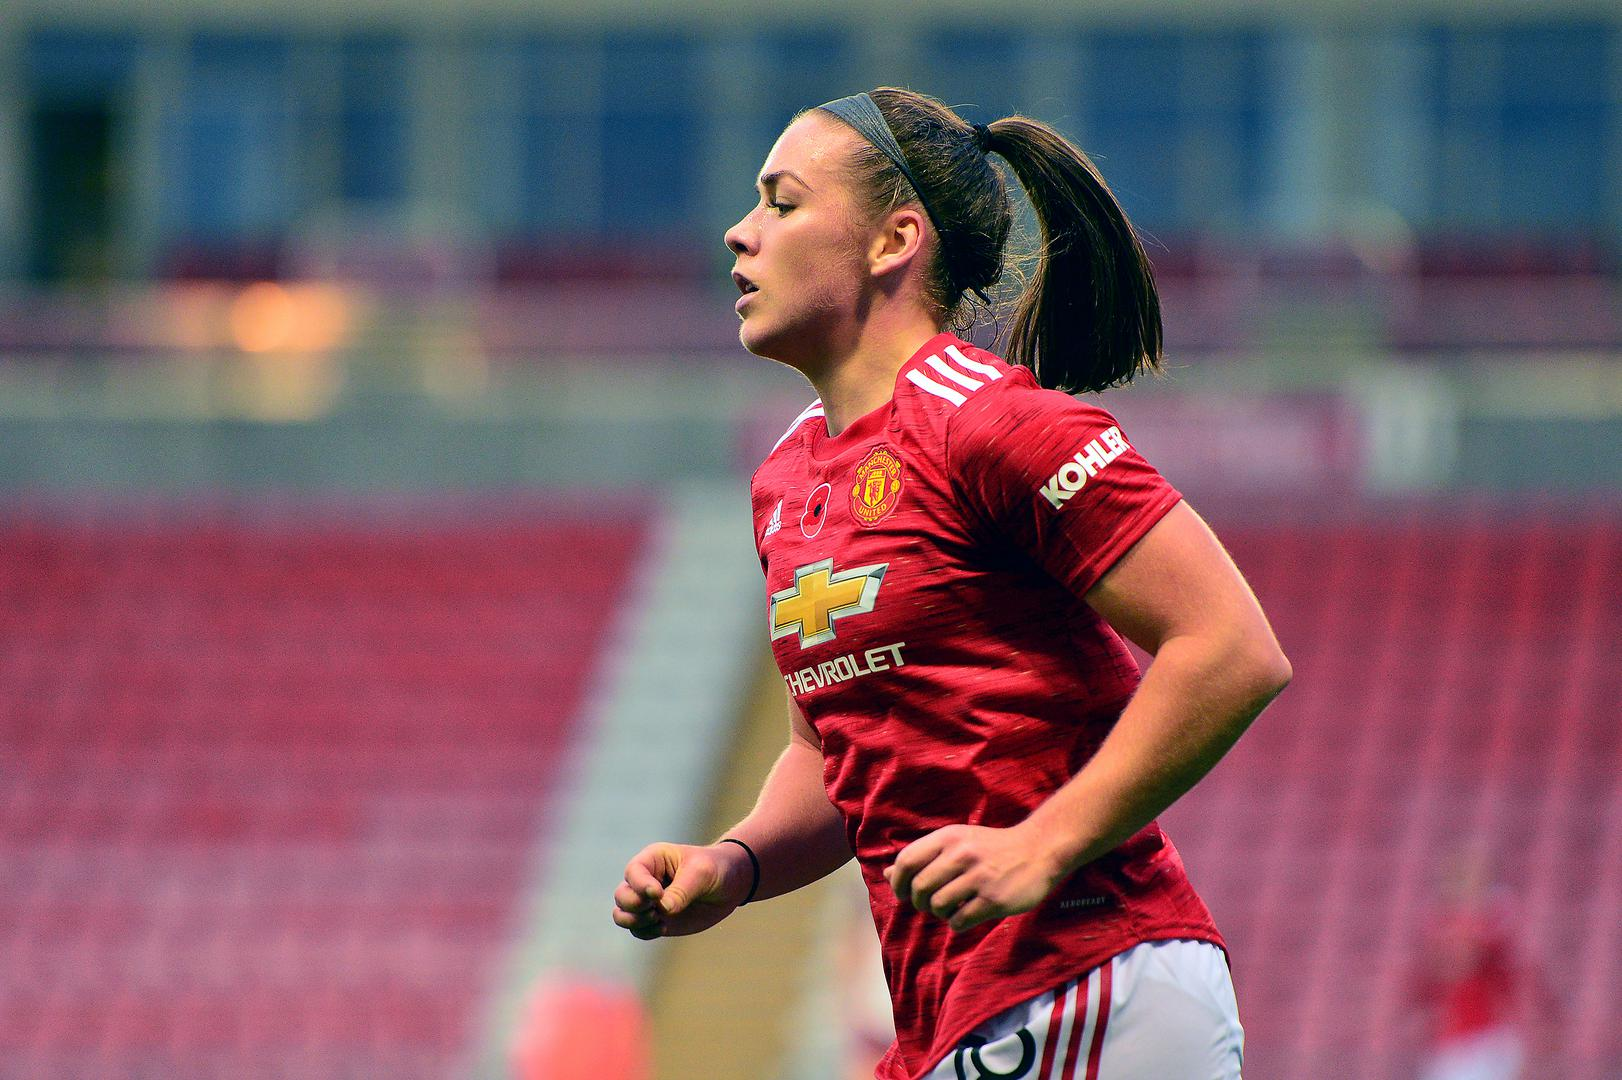 Kirsty Hanson playing for Manchester United Women.